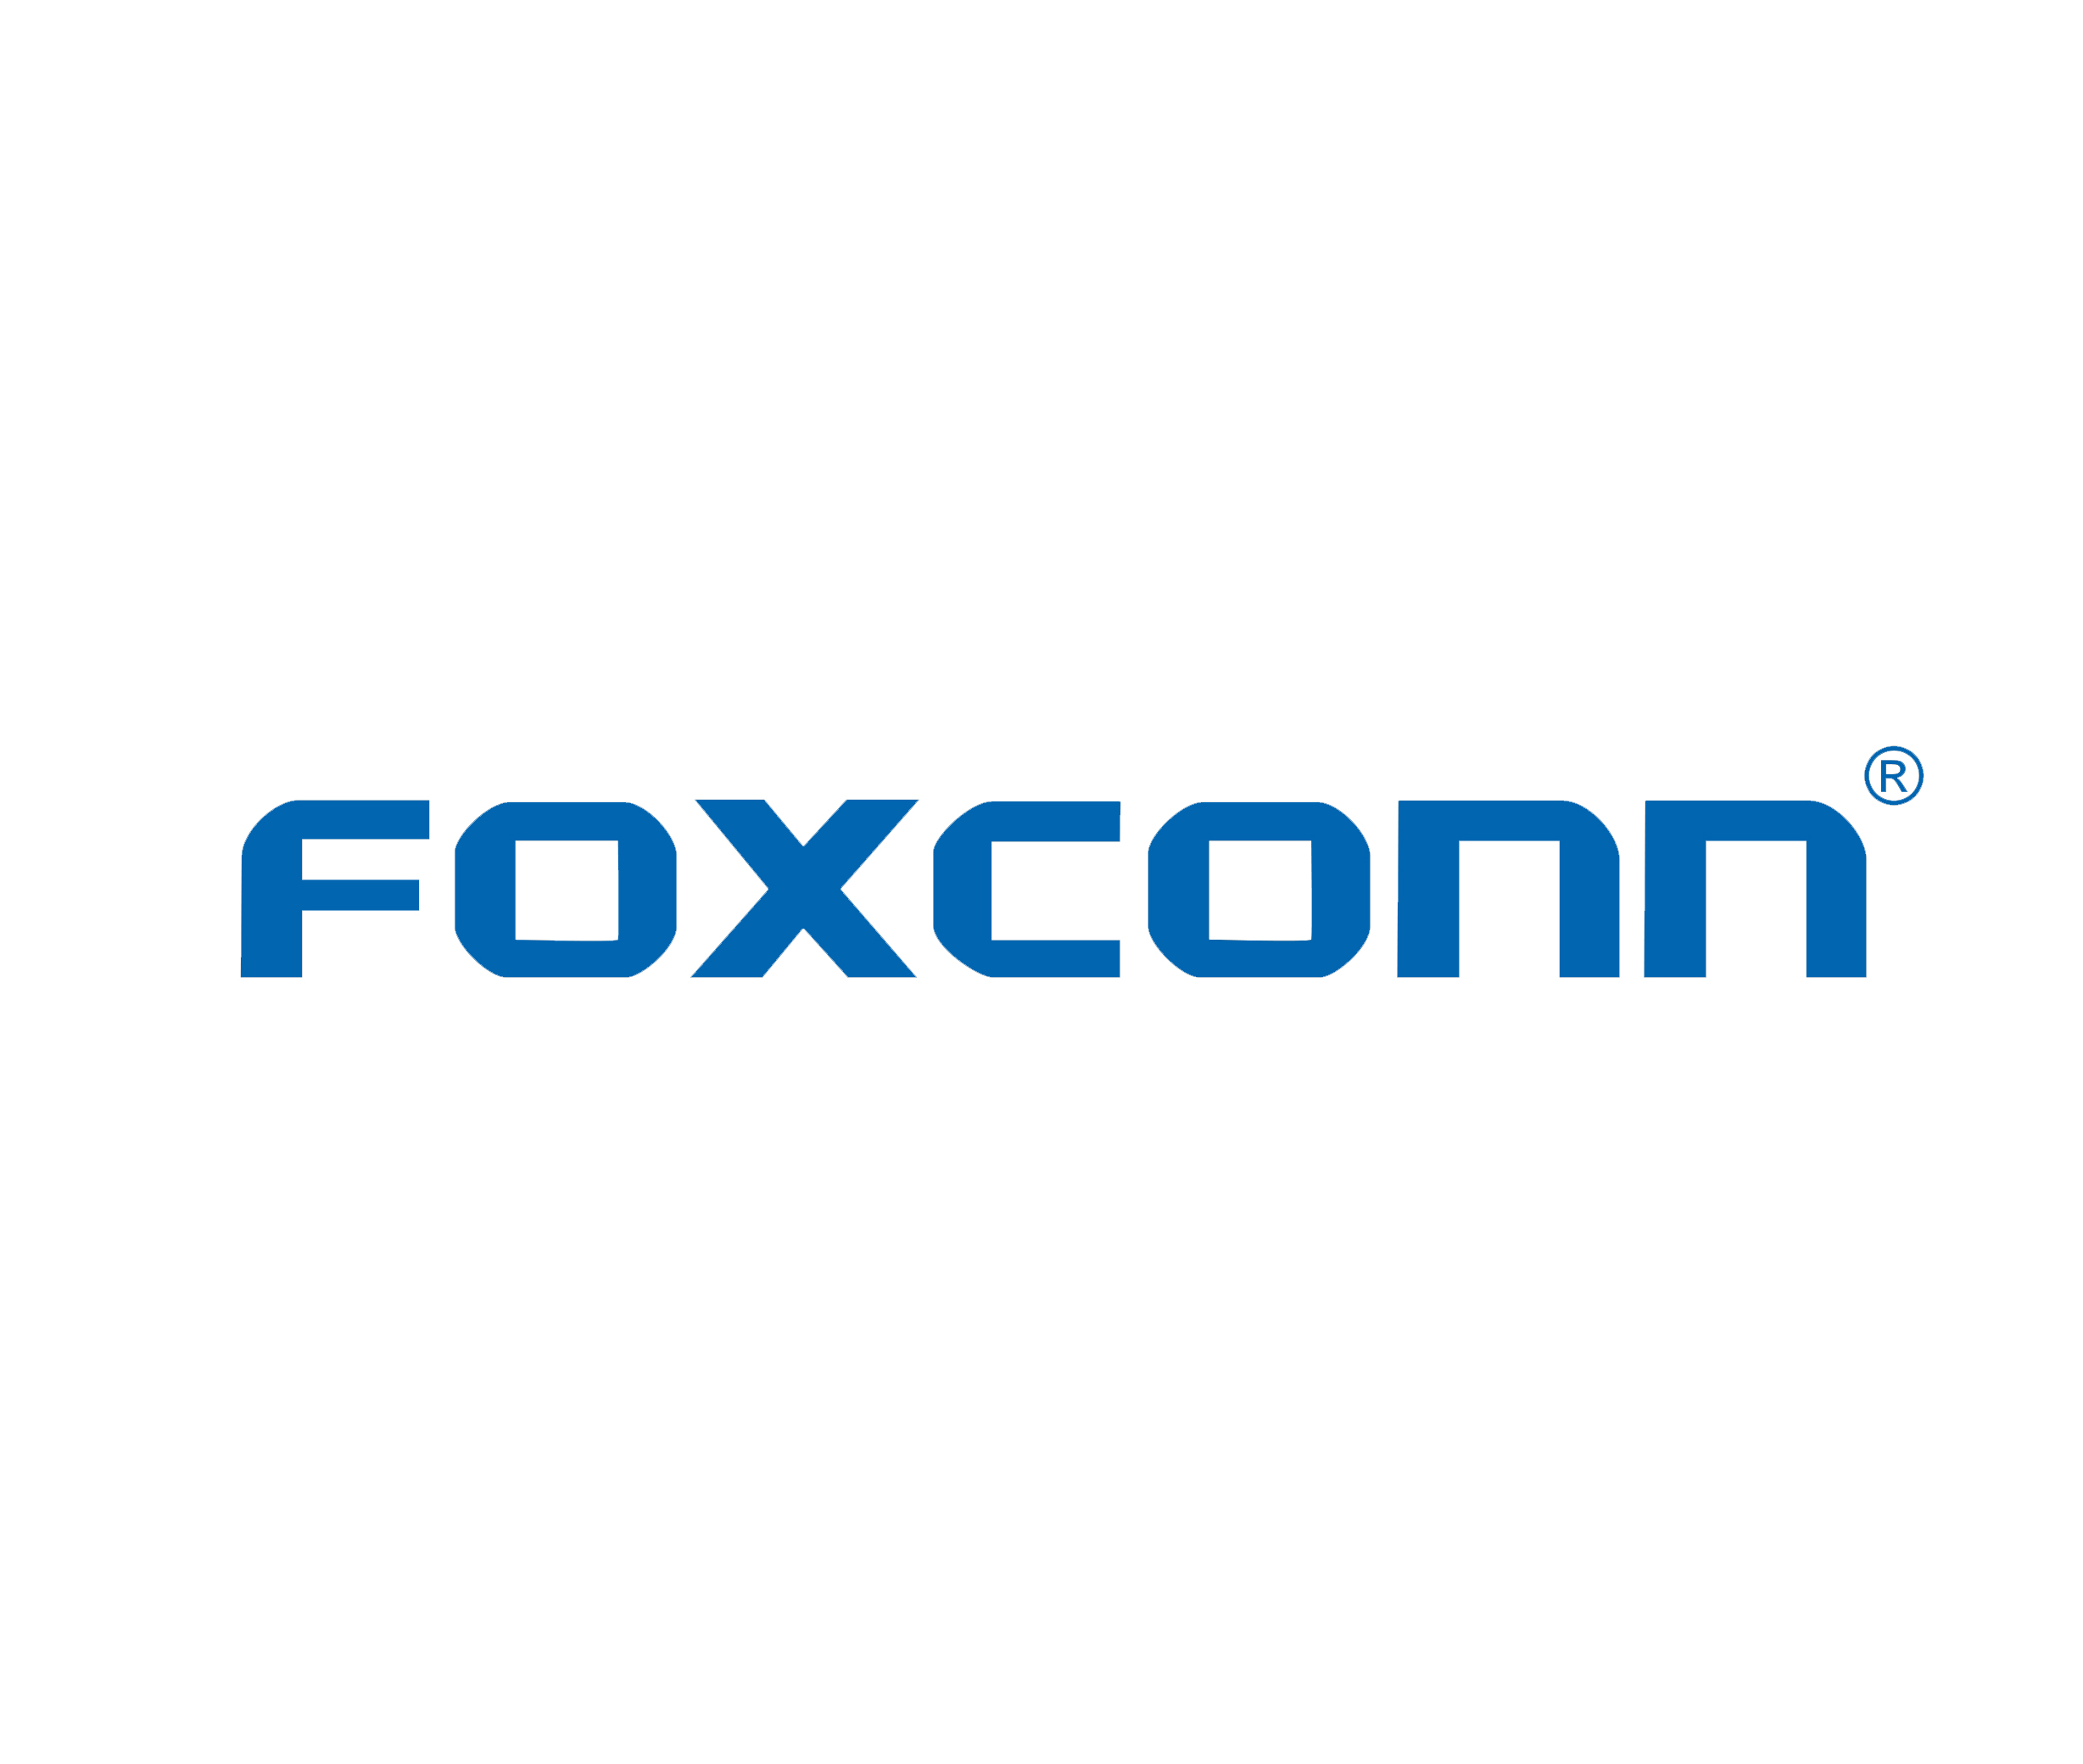 Assembly passes Foxconn incentive package